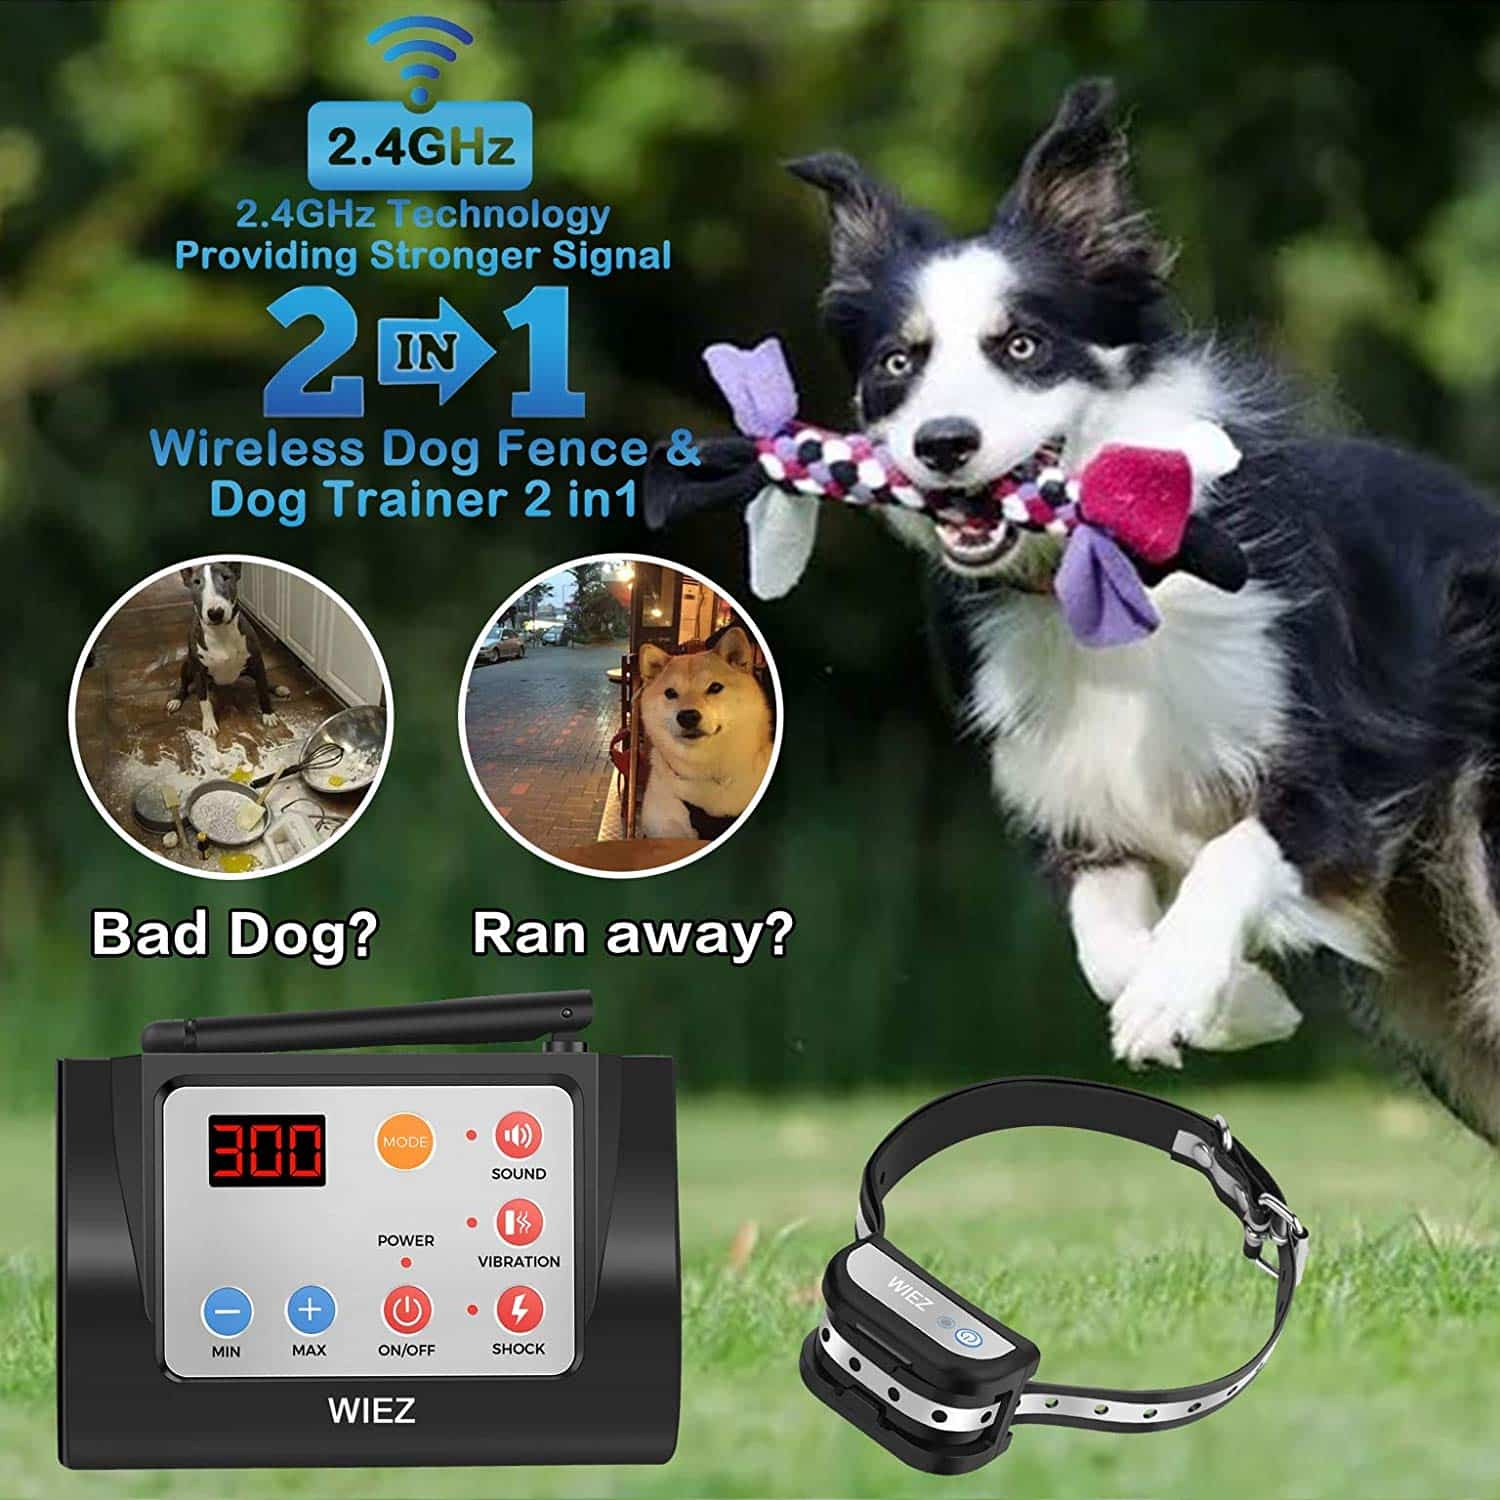 WIEZ Wireless Electric Dog Fence